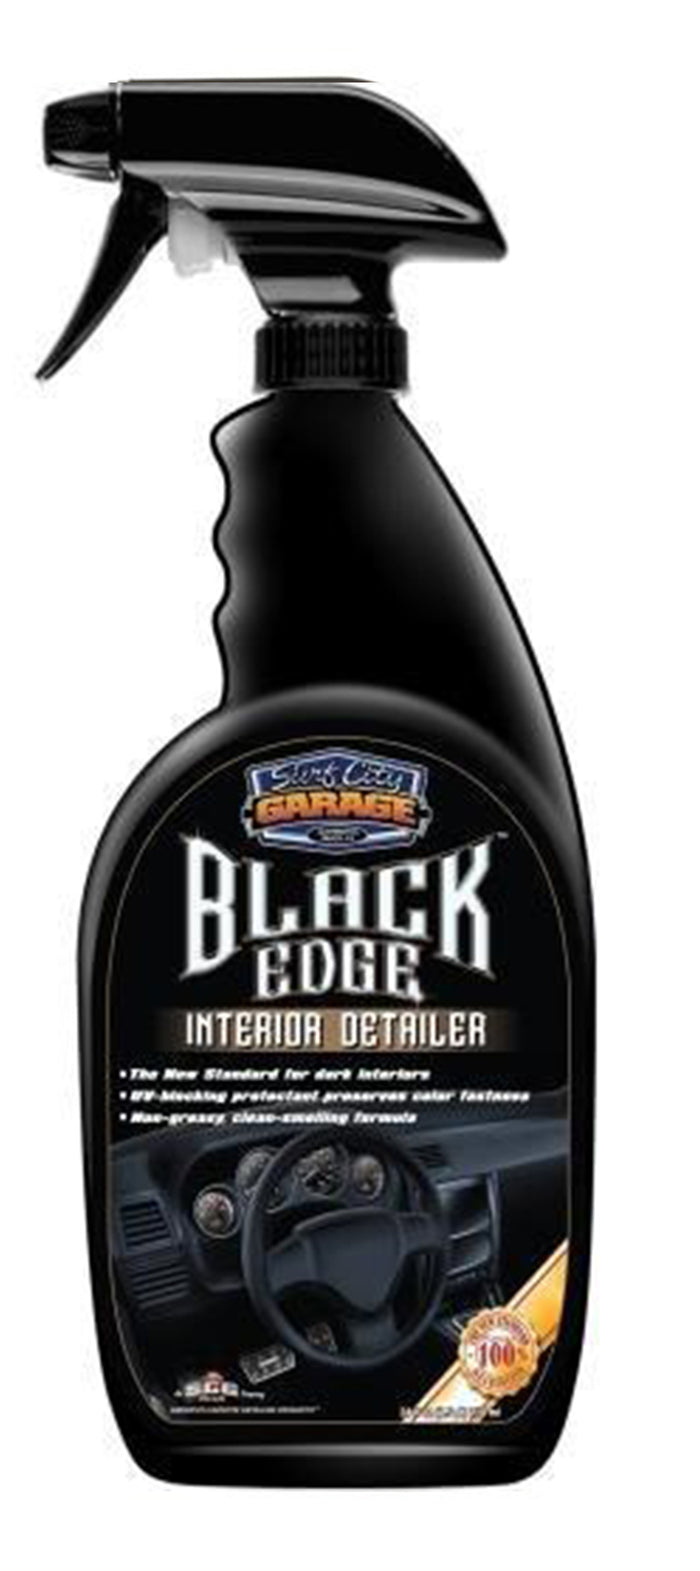 Black Edge® Interior Detailer